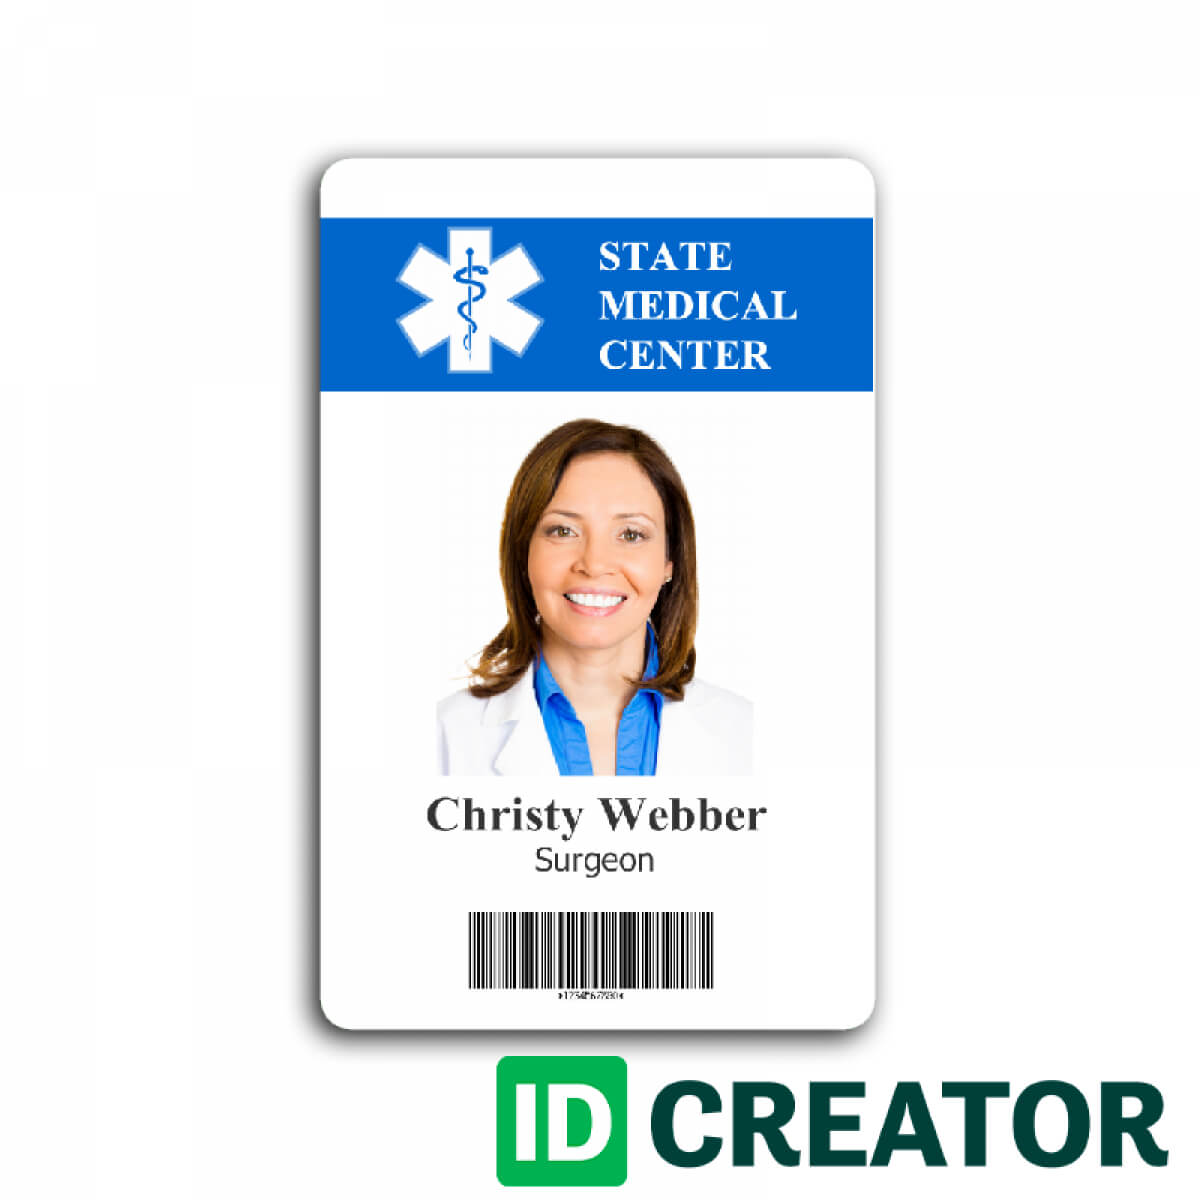 006 Id Badge Template Free Ideas Placement Employee Card Ai with Hospital Id Card Template